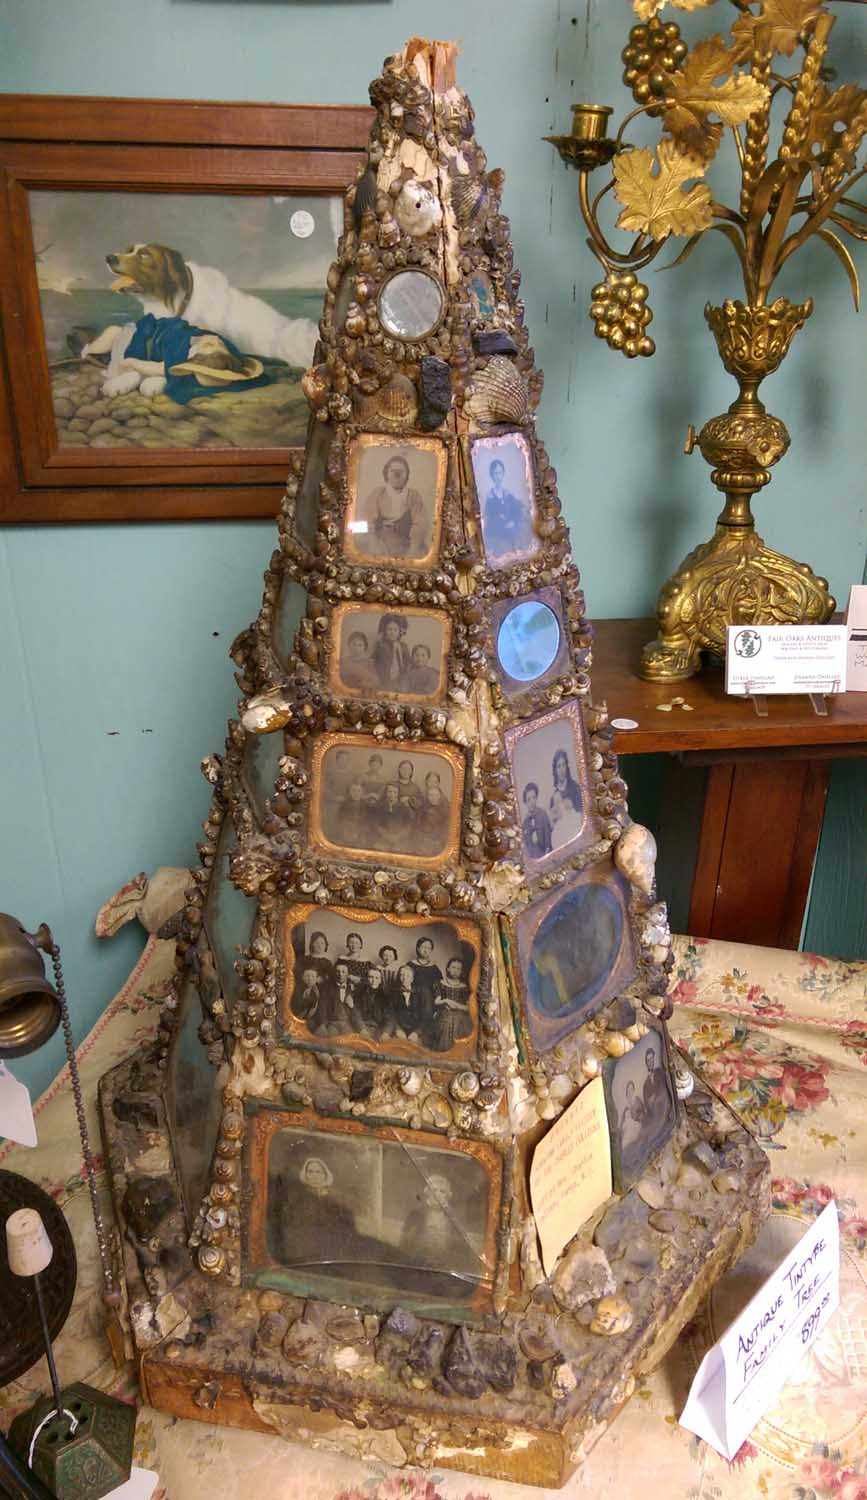 A Rare Antique Folk Art Find: A Family Tree Made Of Tintypes